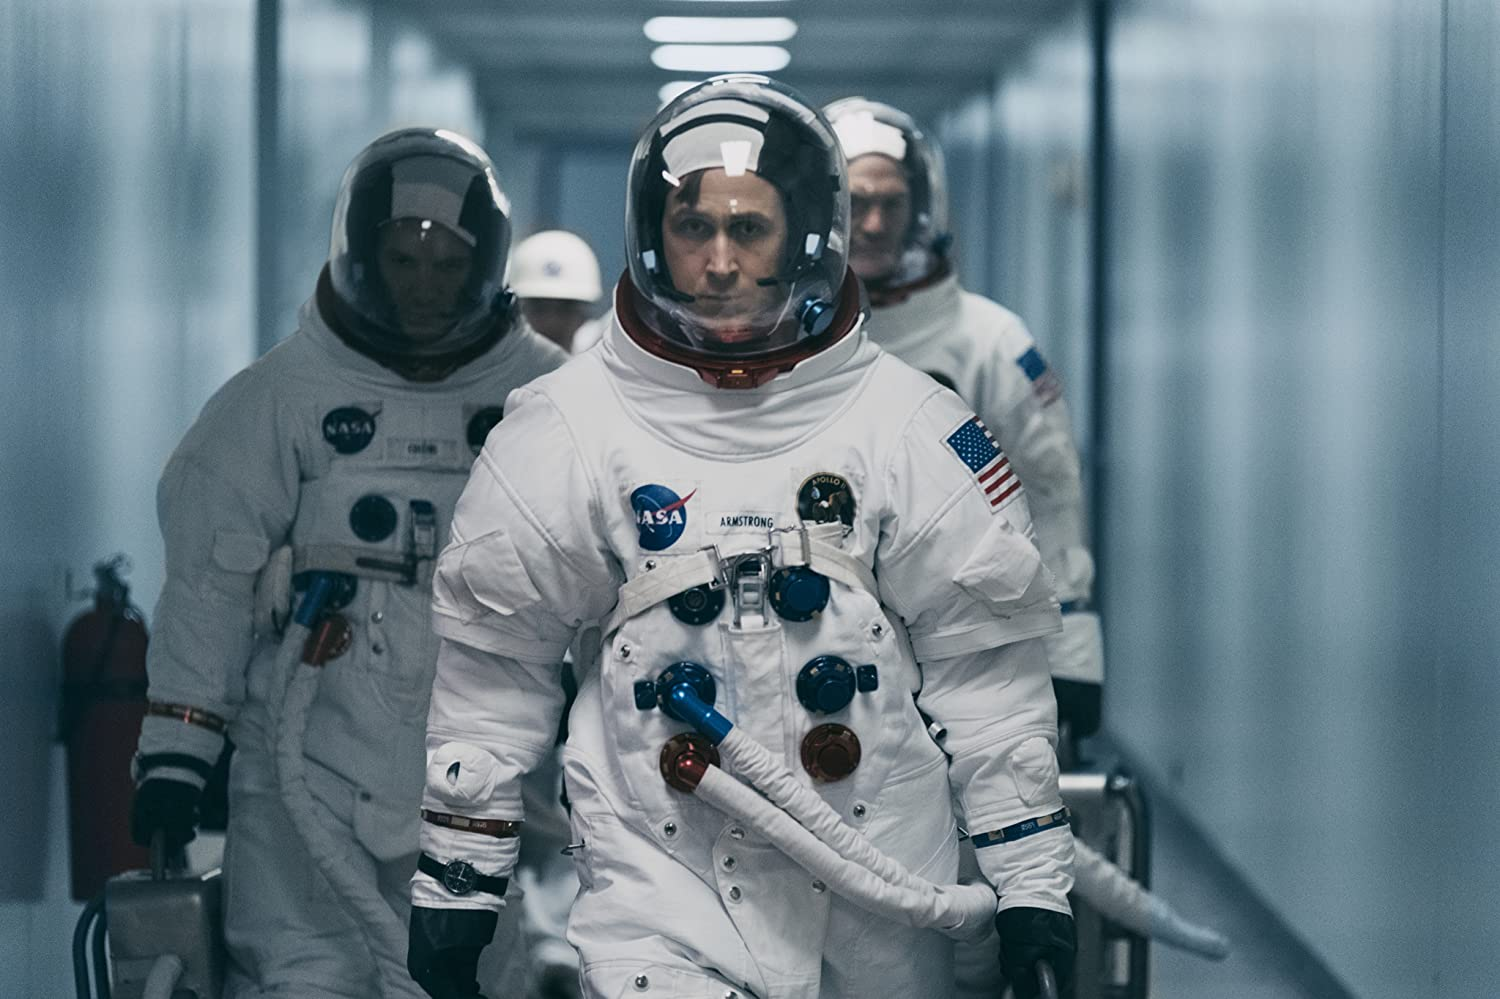 Lukas Haas, Ryan Gosling, and Corey Stoll in First Man (2018)